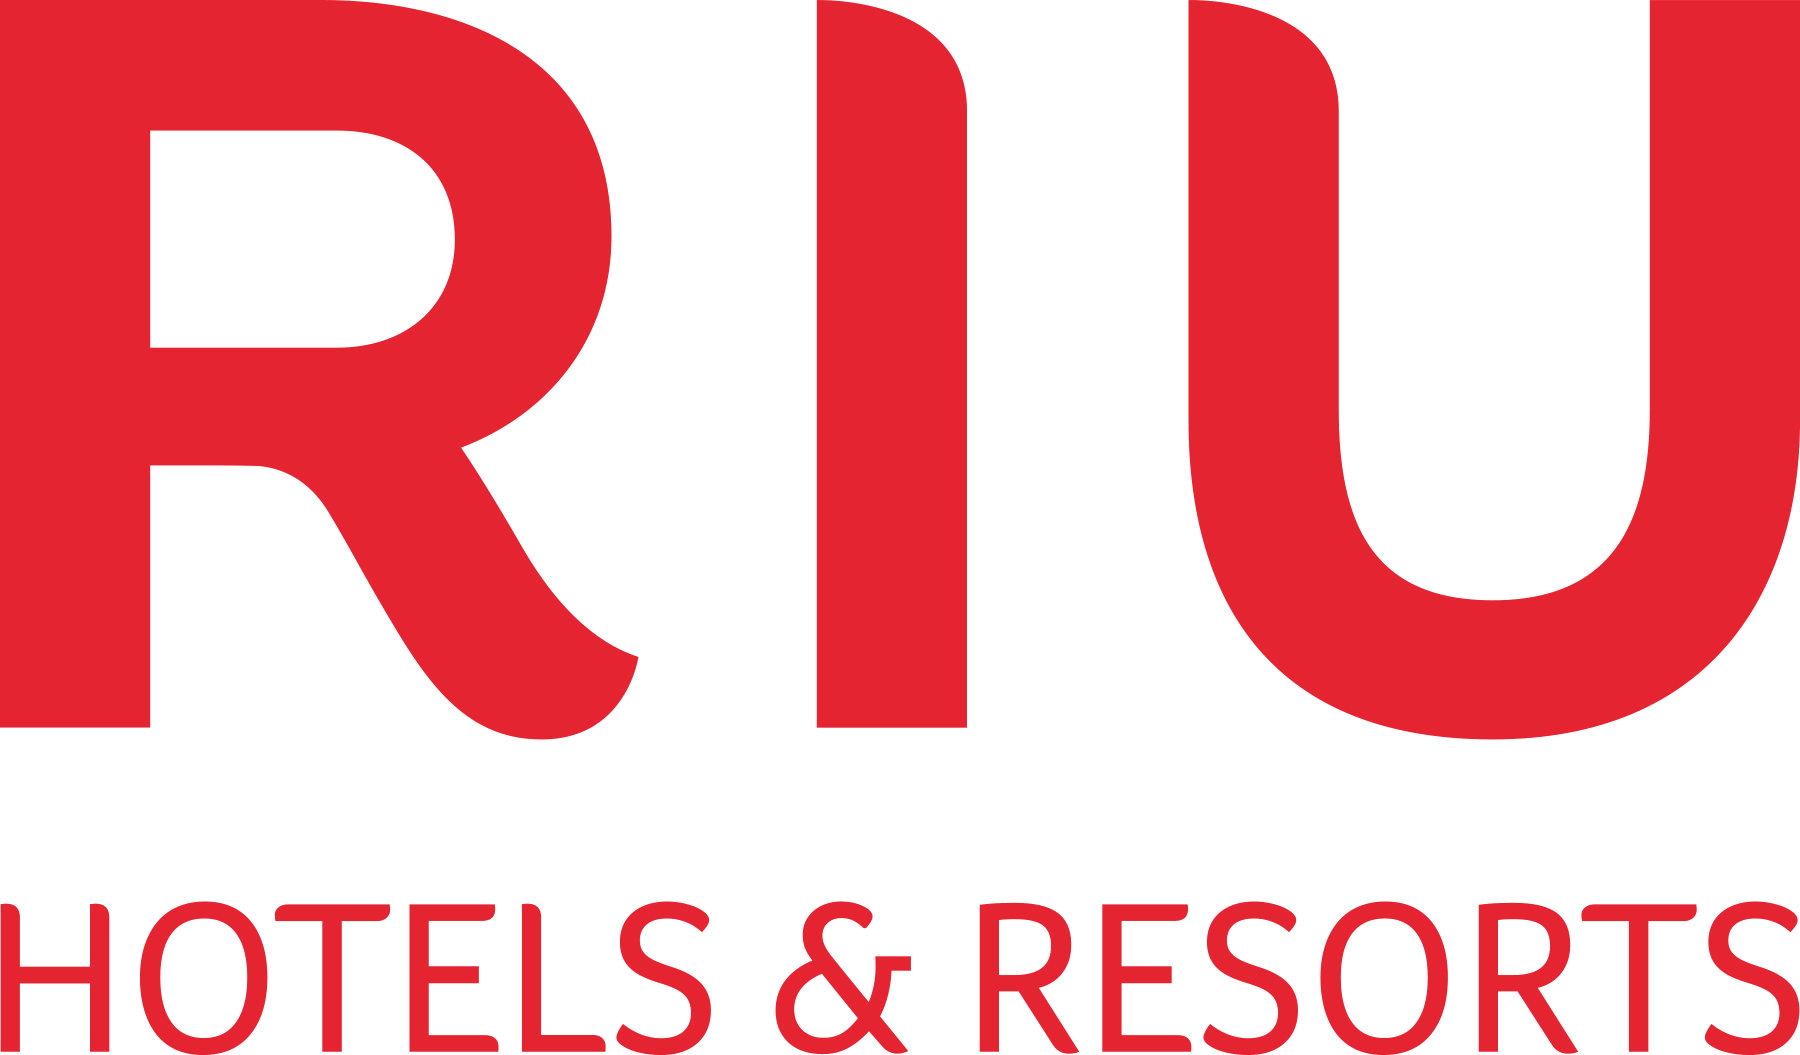 Riu-color-print-2018